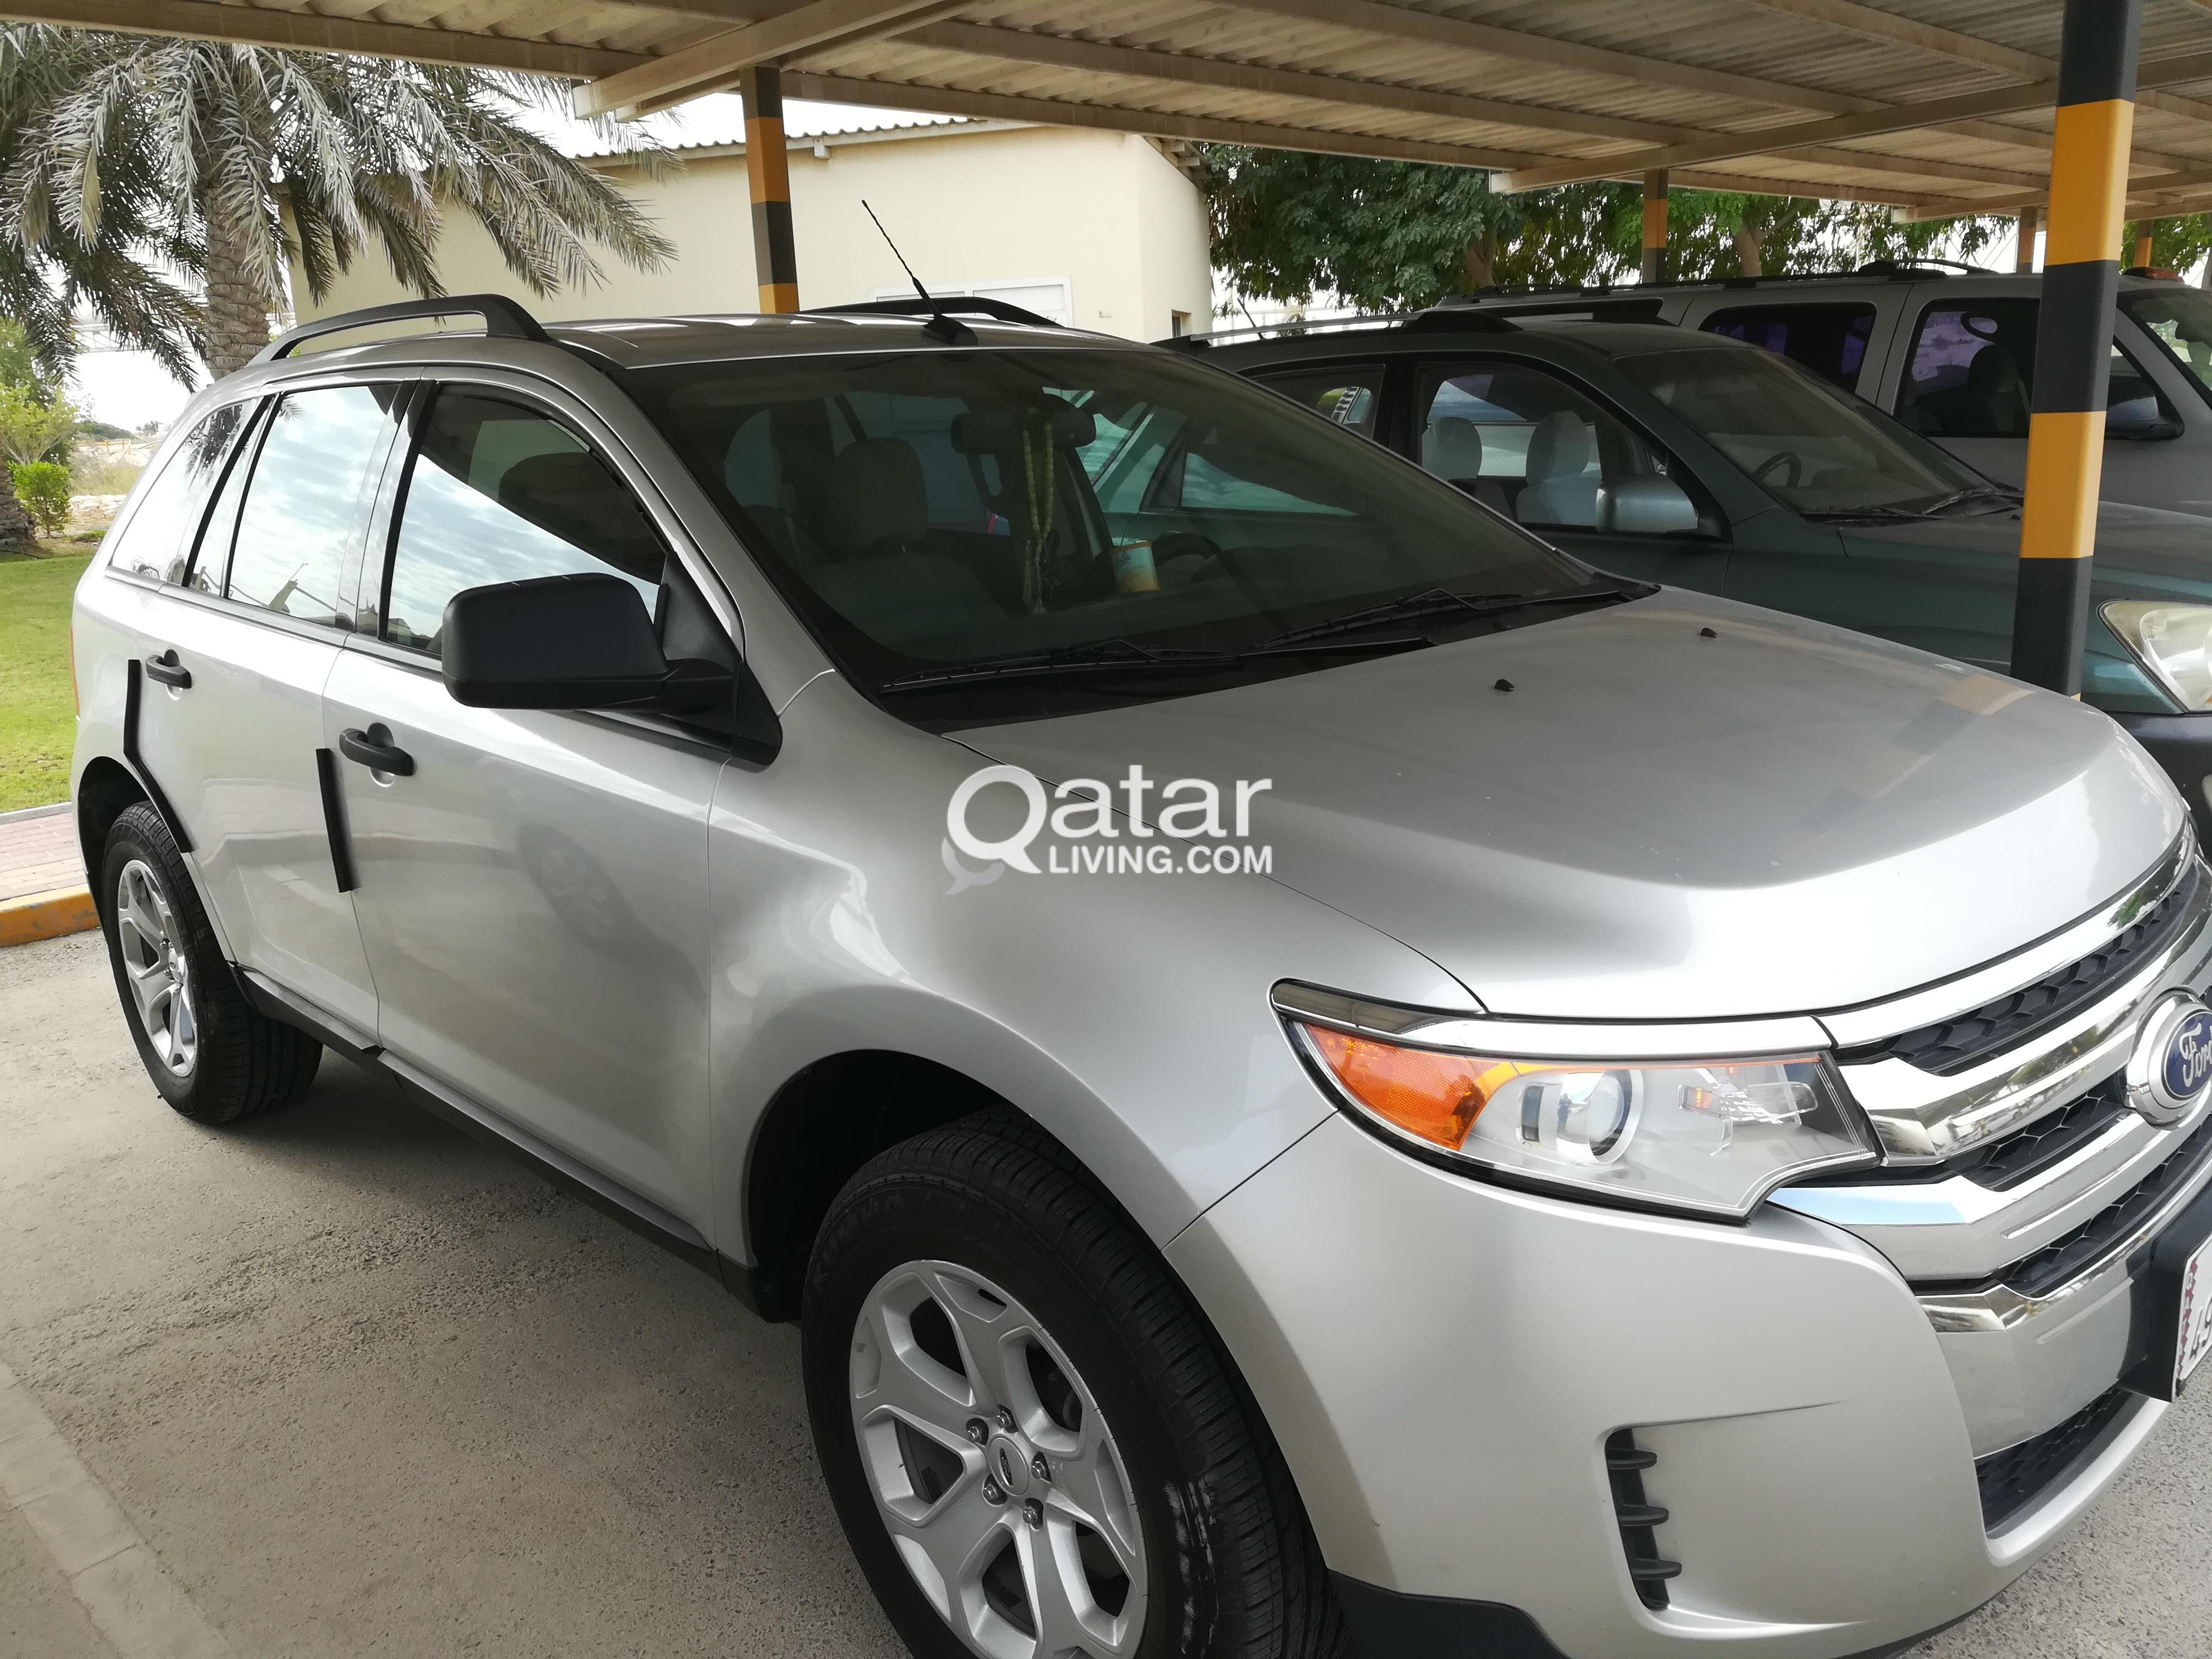 Ford edge 2012 model for sale qatar living